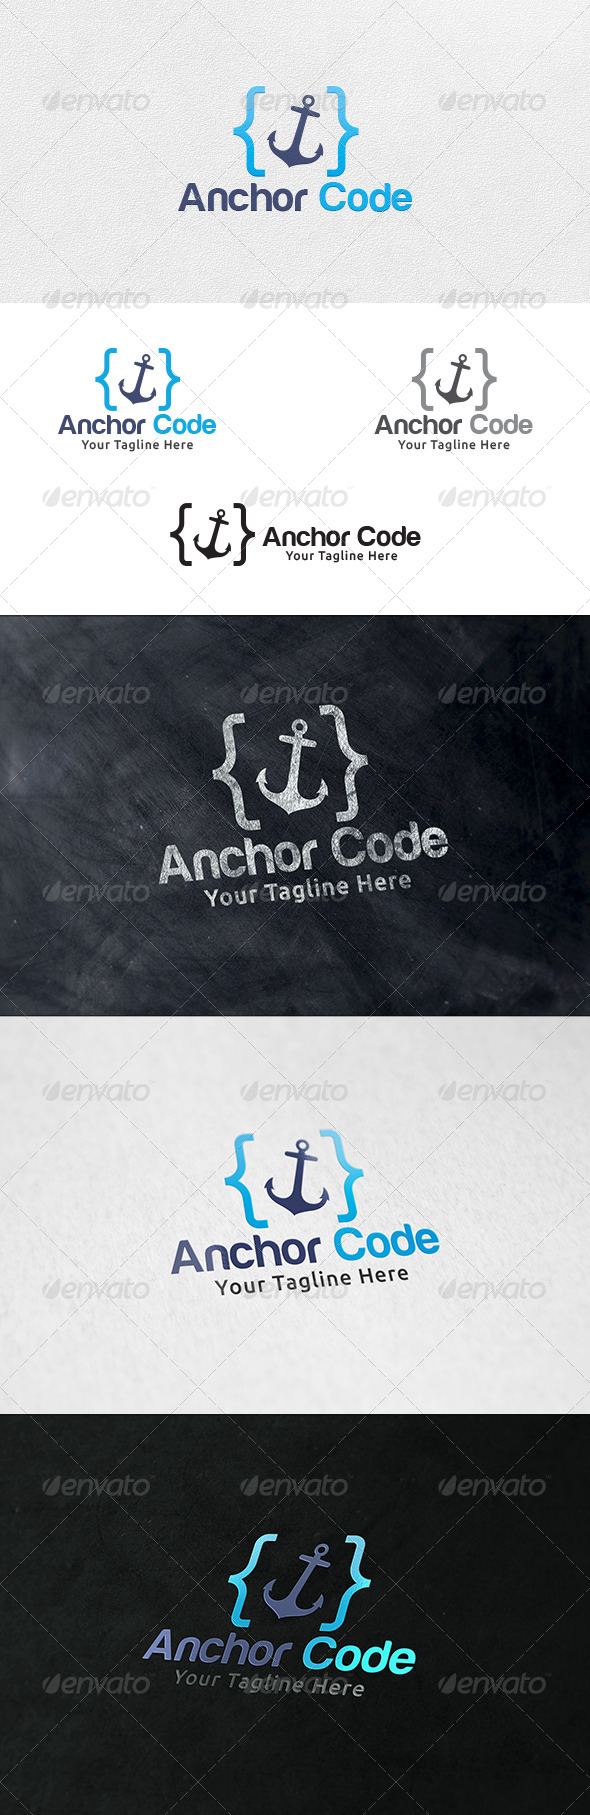 GraphicRiver Anchor Code Logo Template 6587321